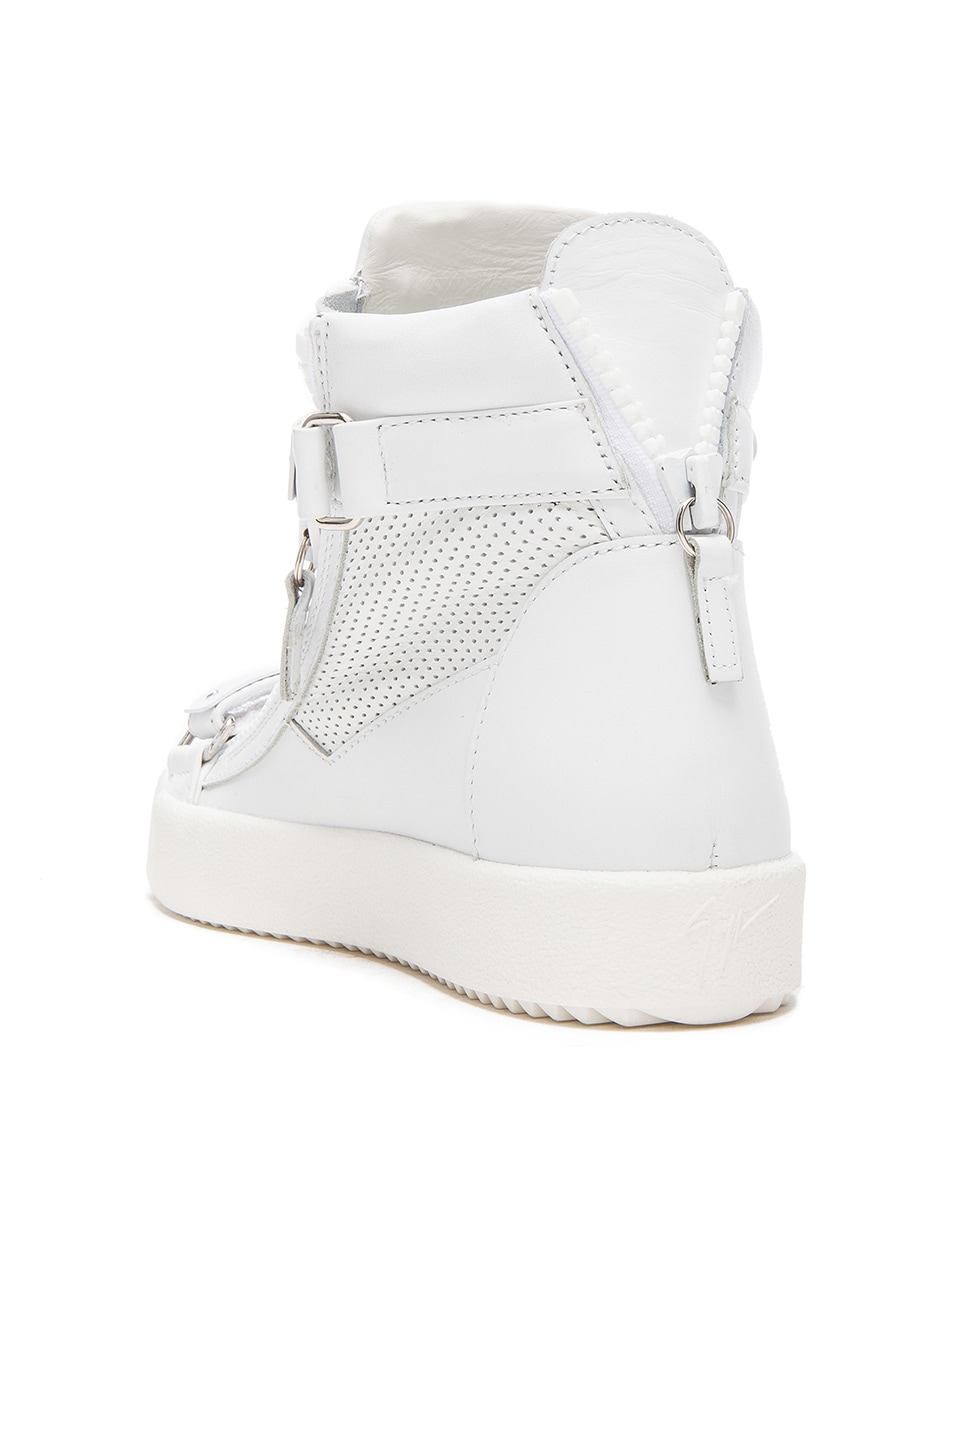 Image 3 of Giuseppe Zanotti Perforated Leather High Top Sneakers in White